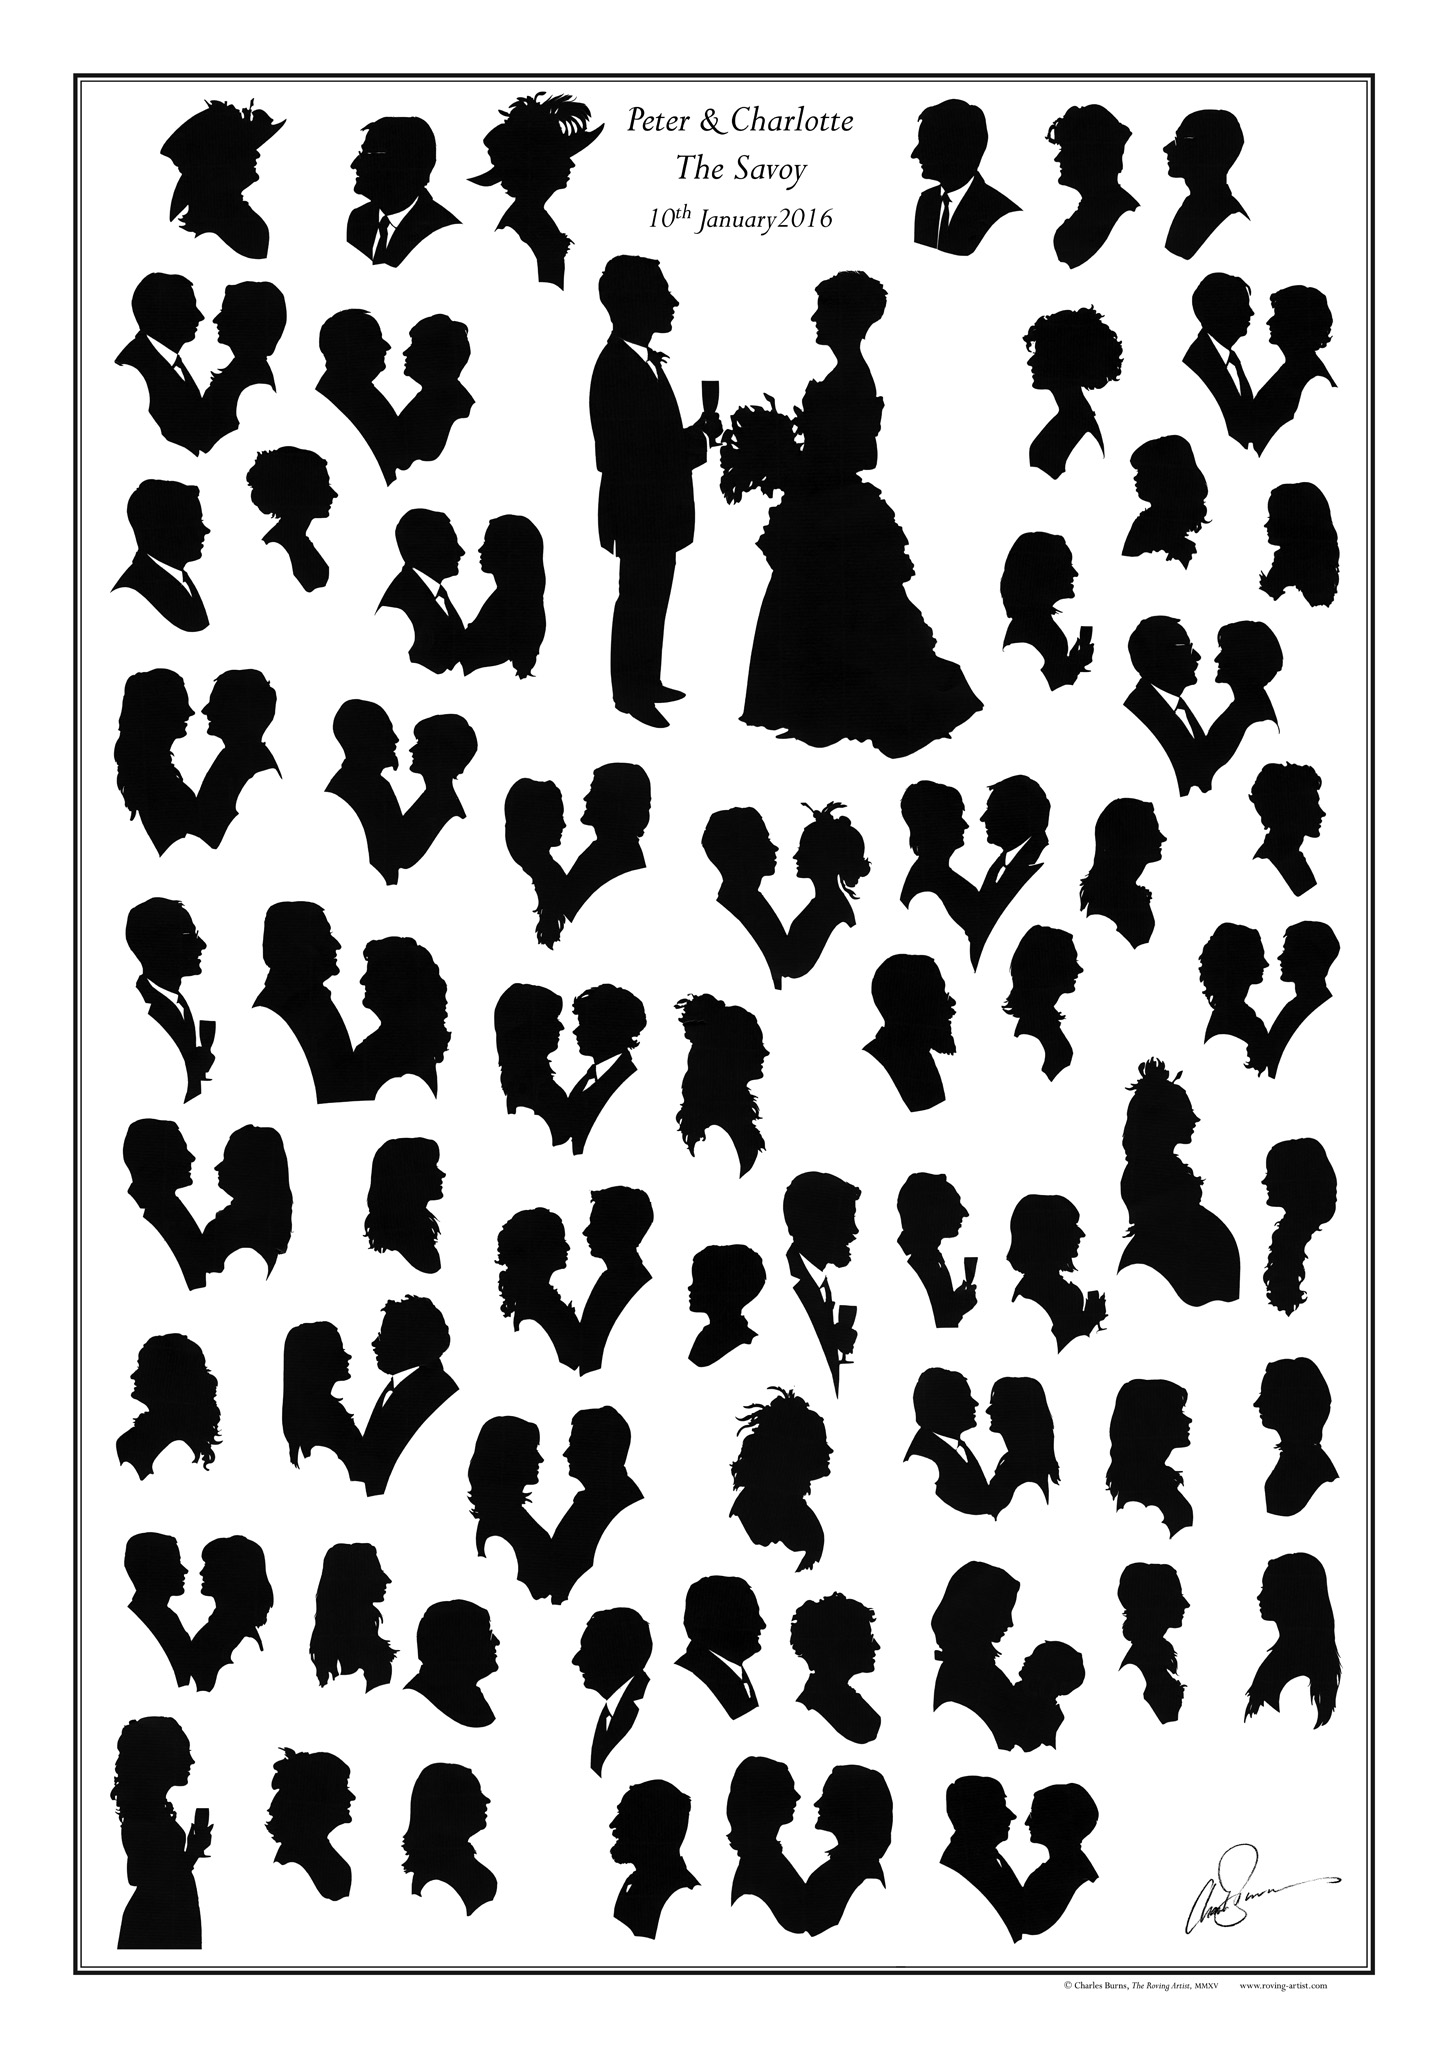 Wedding silhouettes entertaining wedding guests the roving artist peter and charlotte junglespirit Gallery